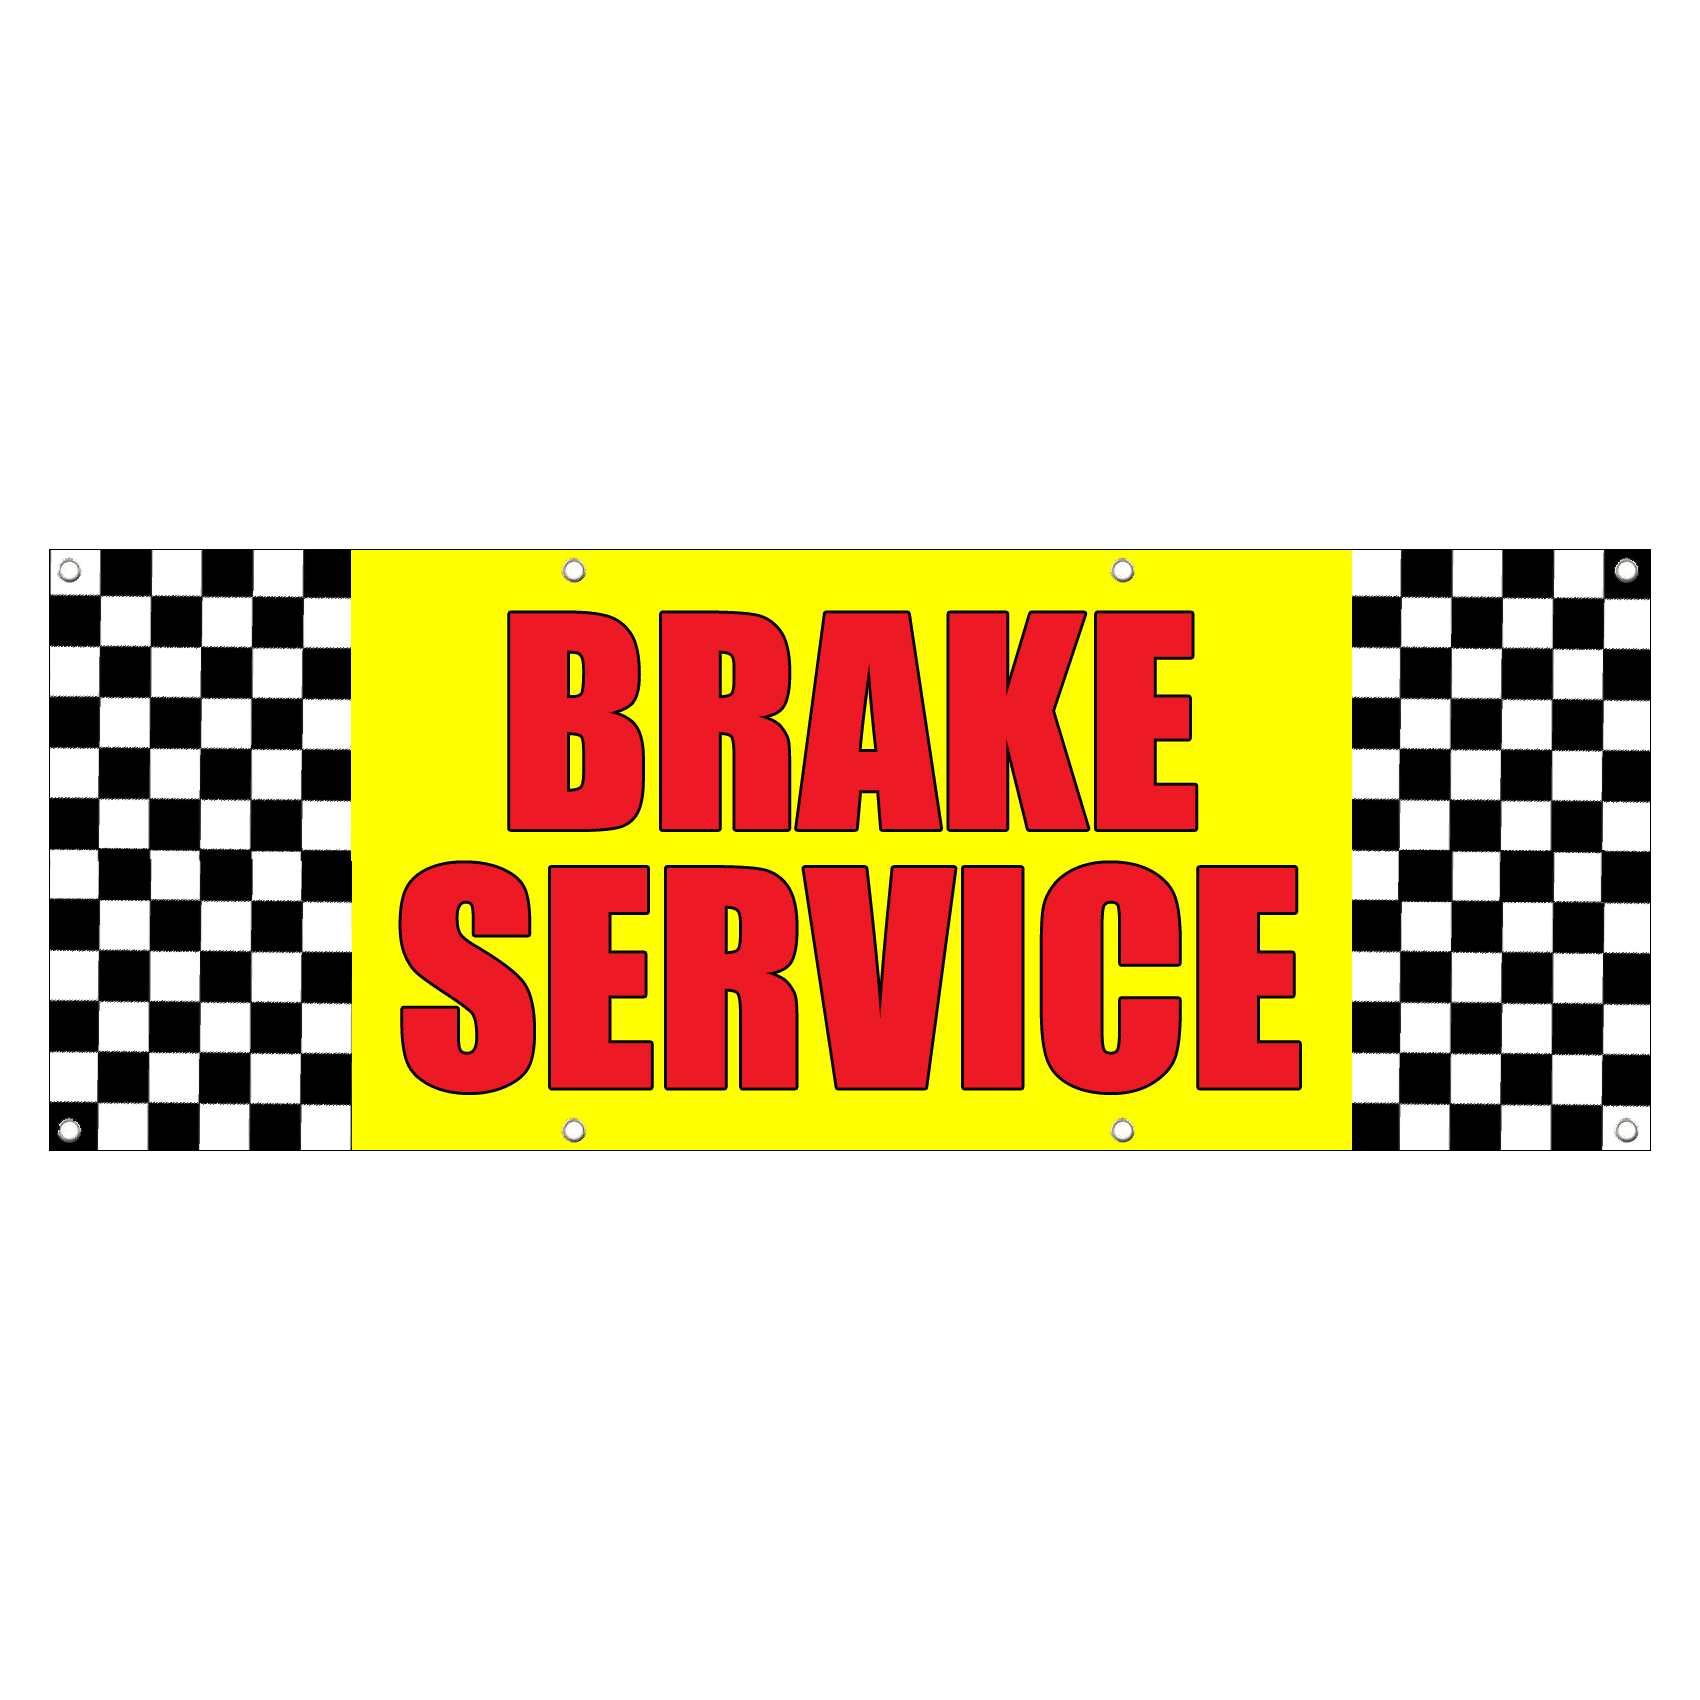 Car Brake Repair Service: BRAKE SERVICE CAR BODY SHOP REPAIR Sign Banner 4 Feet X 2